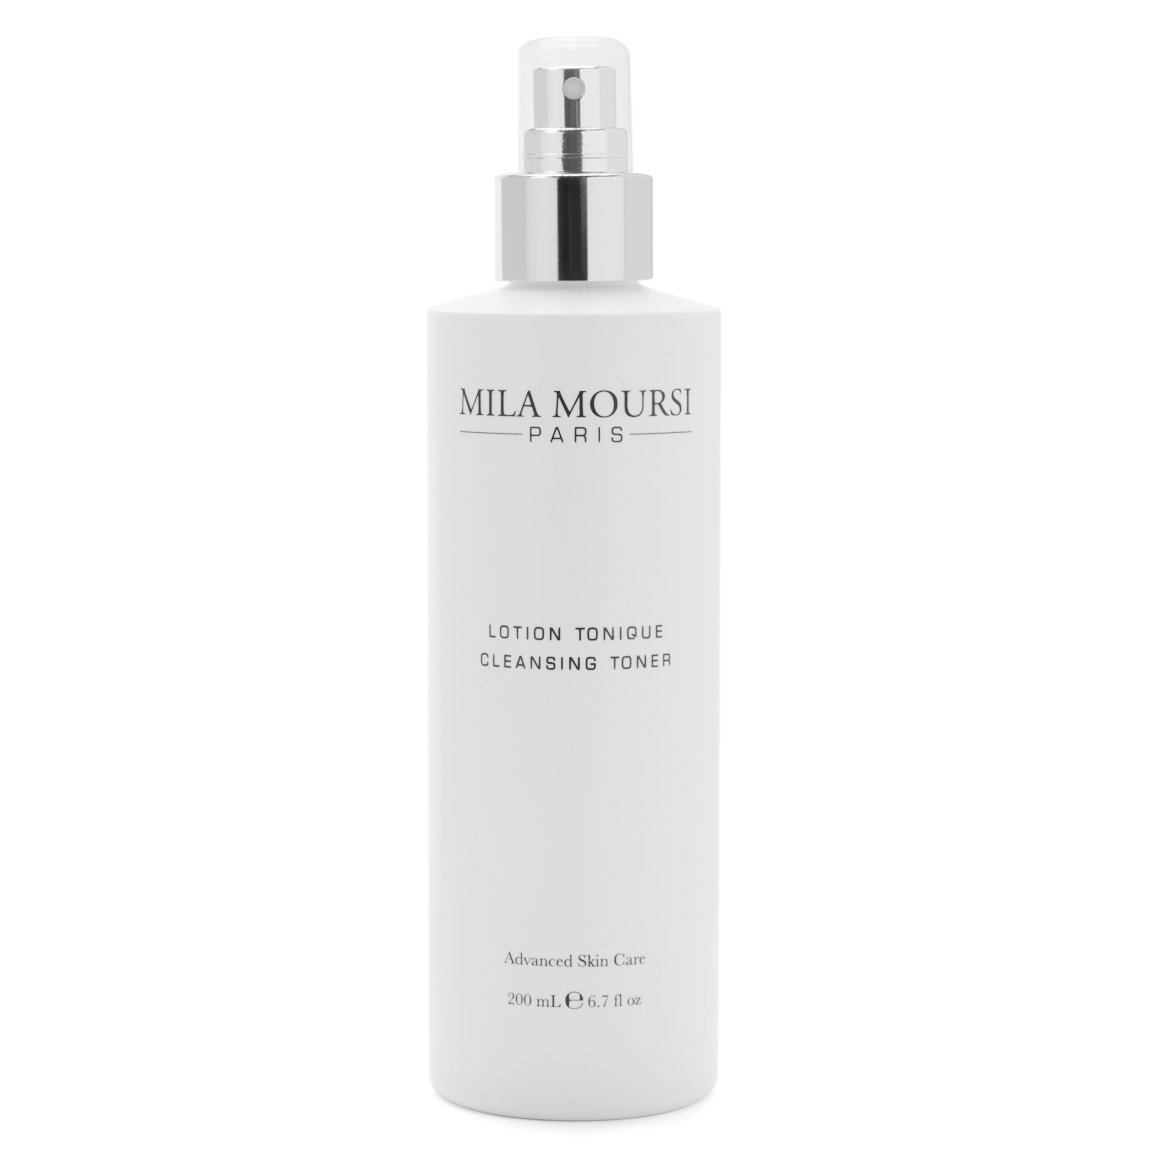 Mila Moursi Cleansing Toner 200 ml alternative view 1 - product swatch.